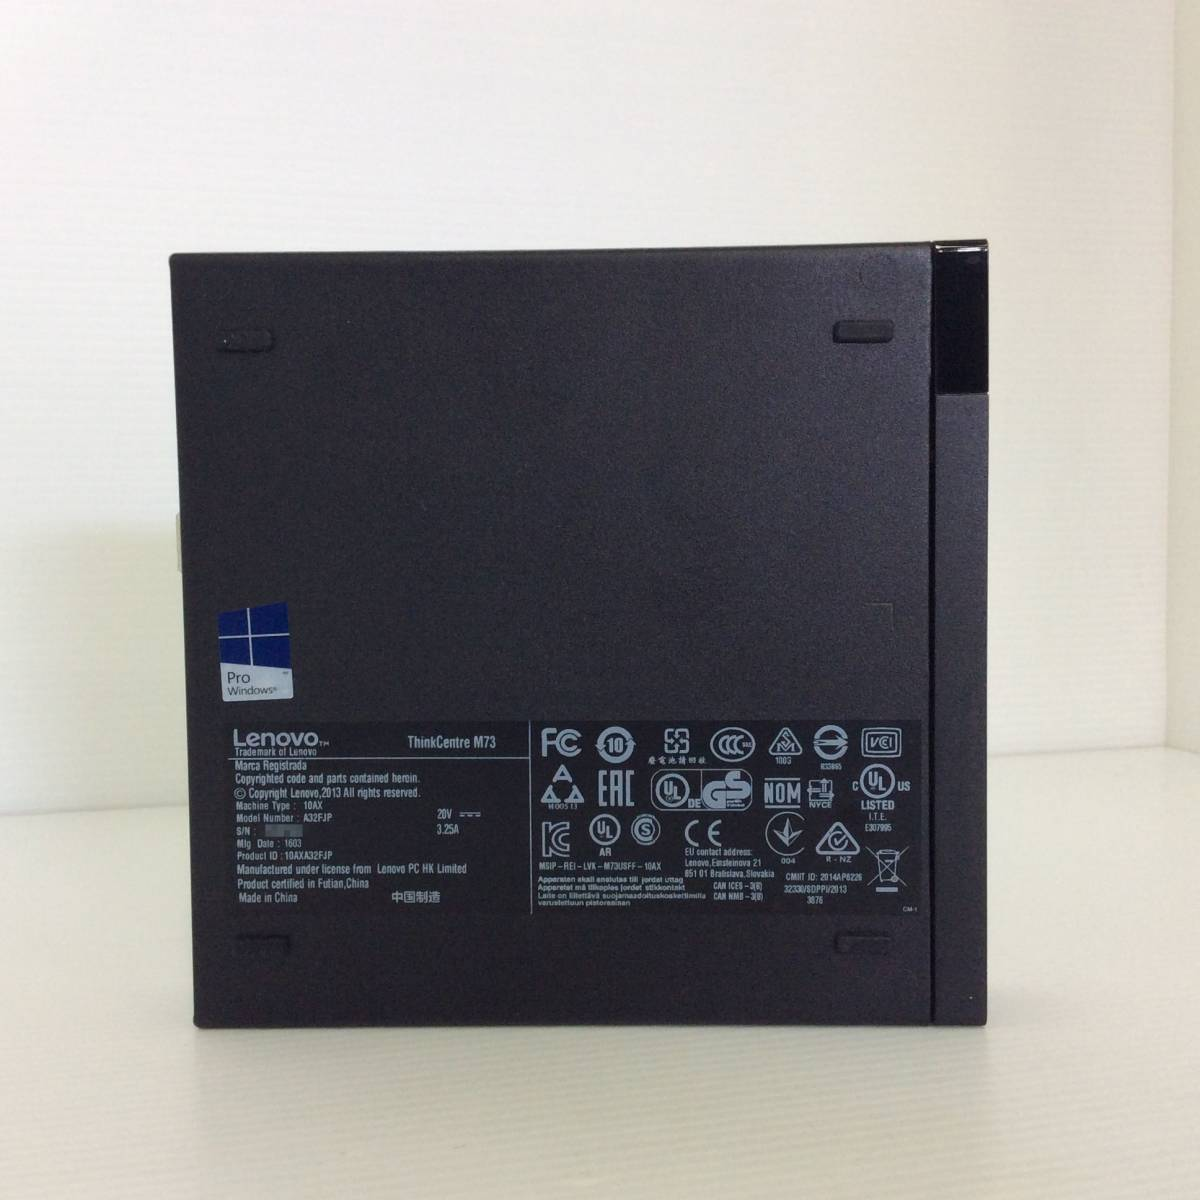 Lenovo ( レノボ ) ThinkCentre M73 10AX-A32FJP / Intel Core i3-4160T 3.10GHz / 2GB / HDDなし R420(H2011-0022)_画像5